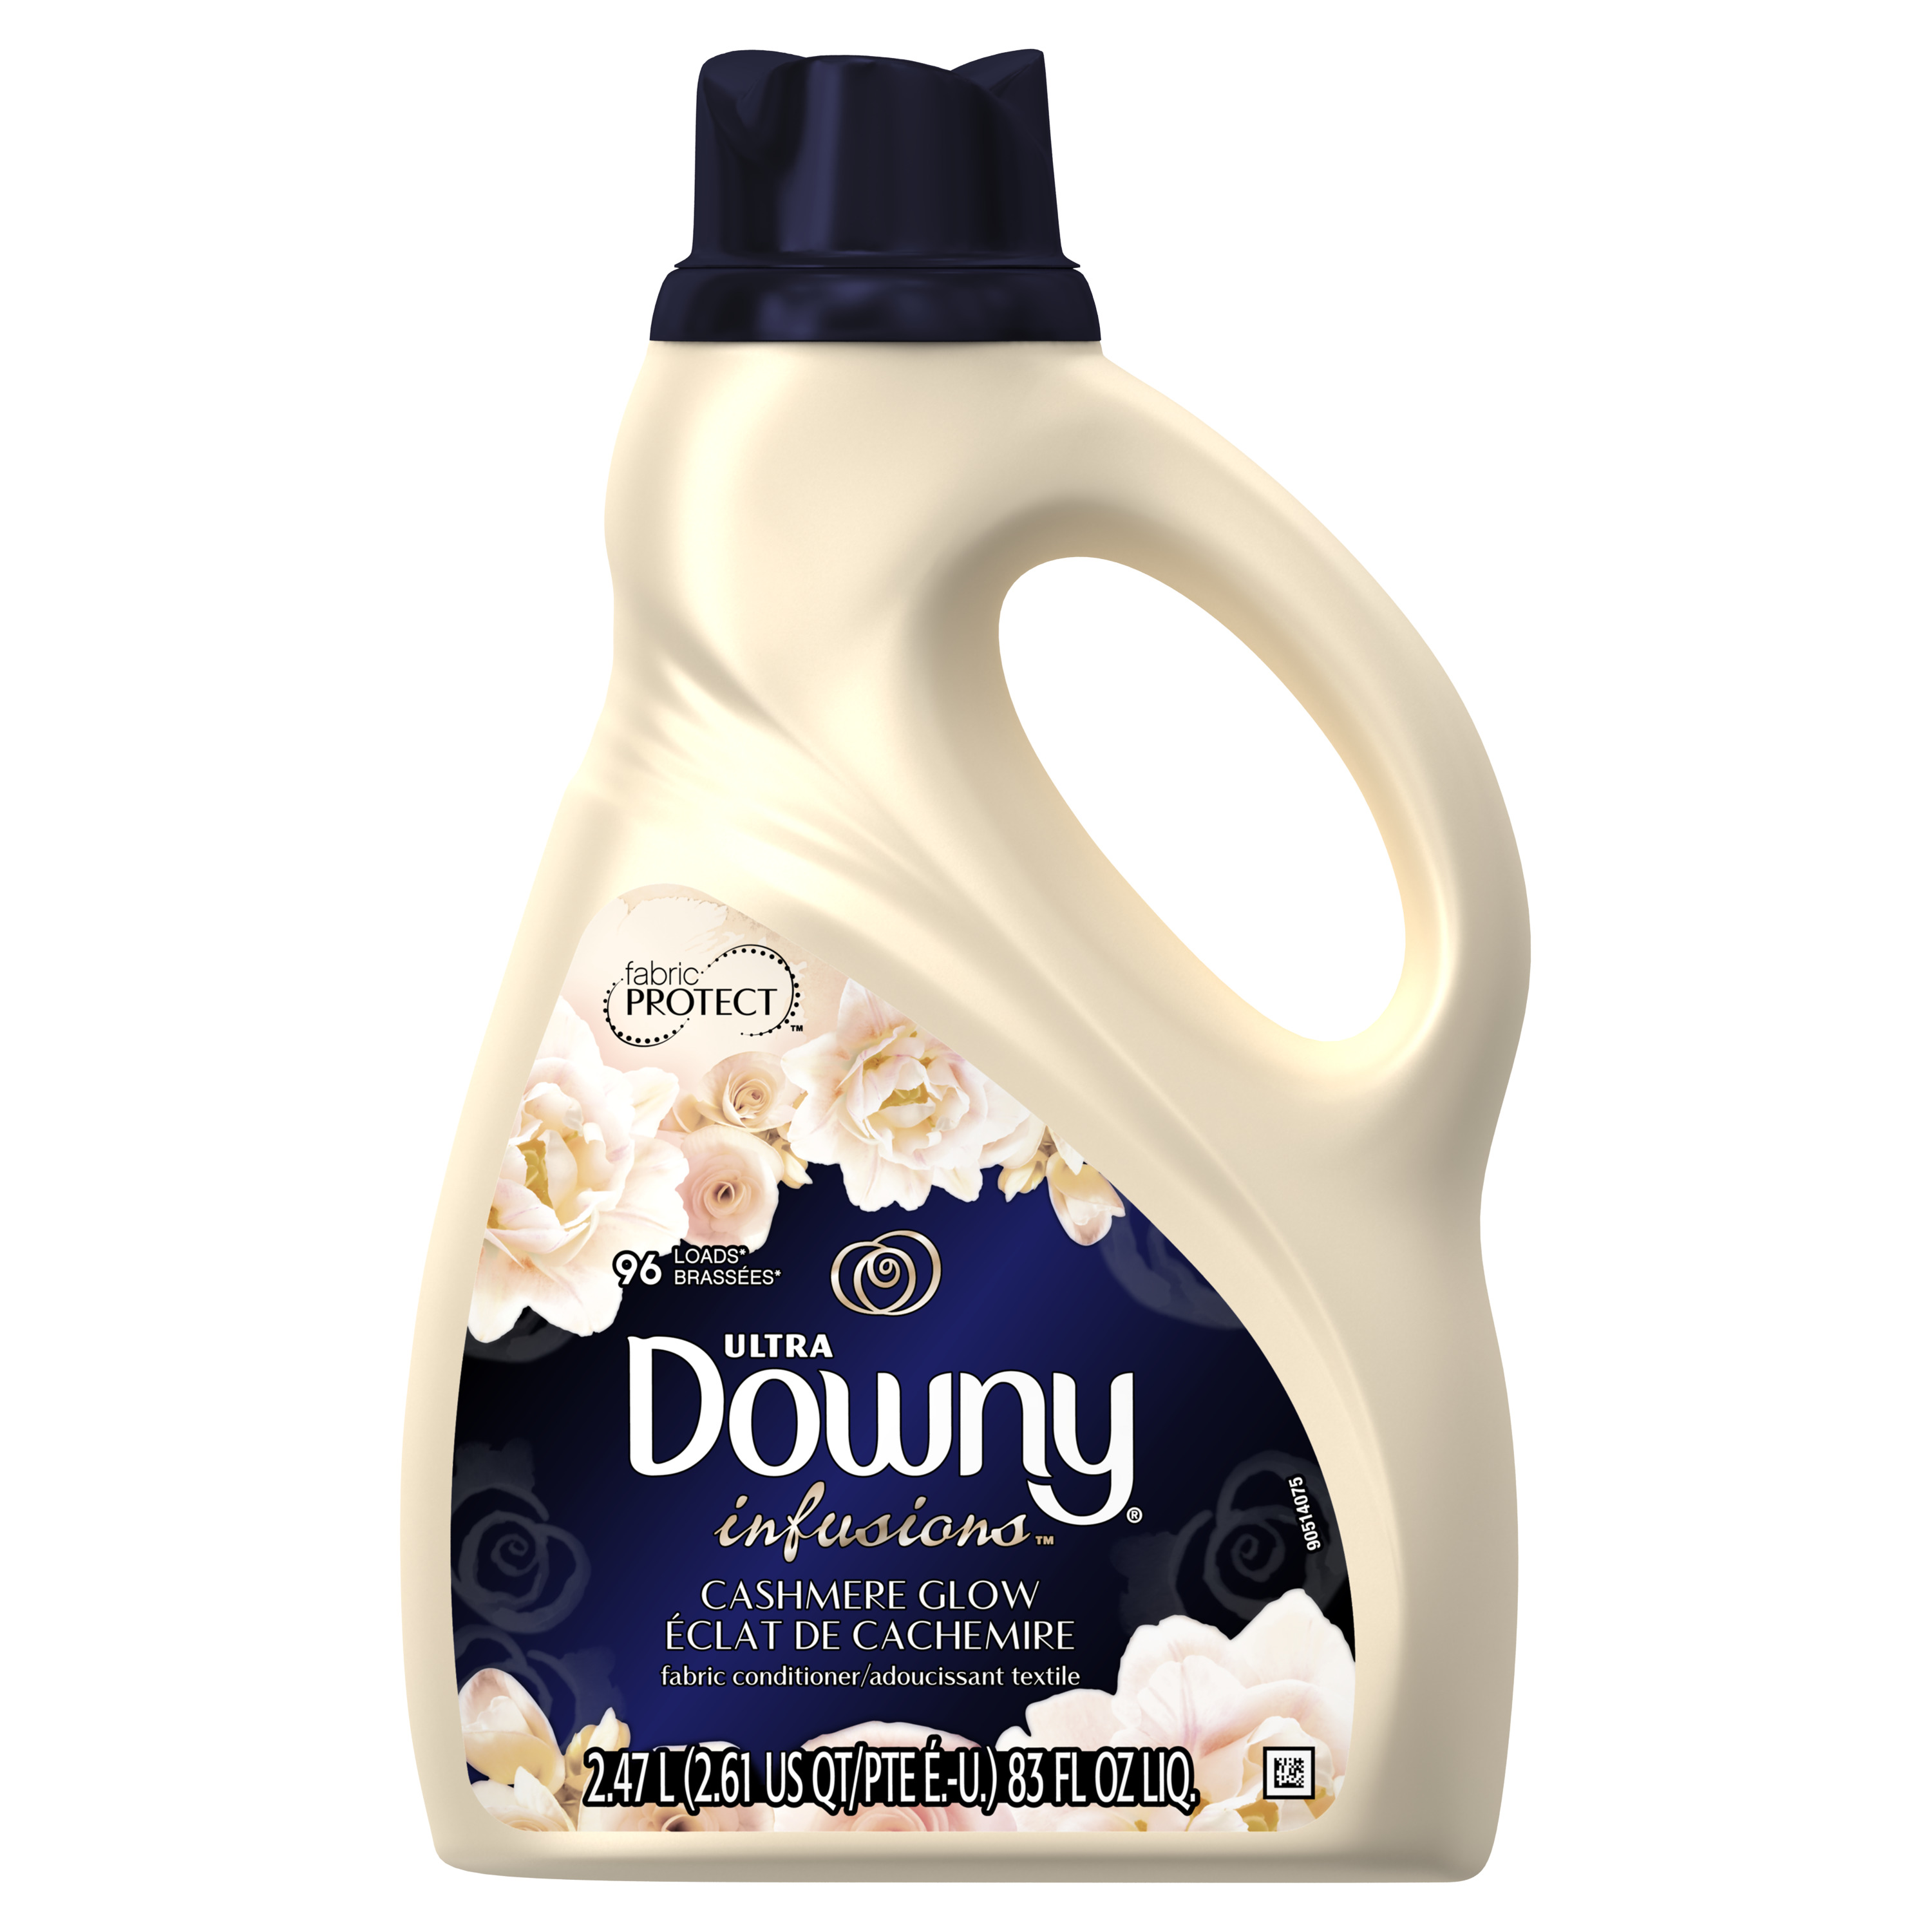 Downy Ultra Infusions Liquid Fabric Conditioner, Cashmere Glow, 96 Loads 83 fl oz